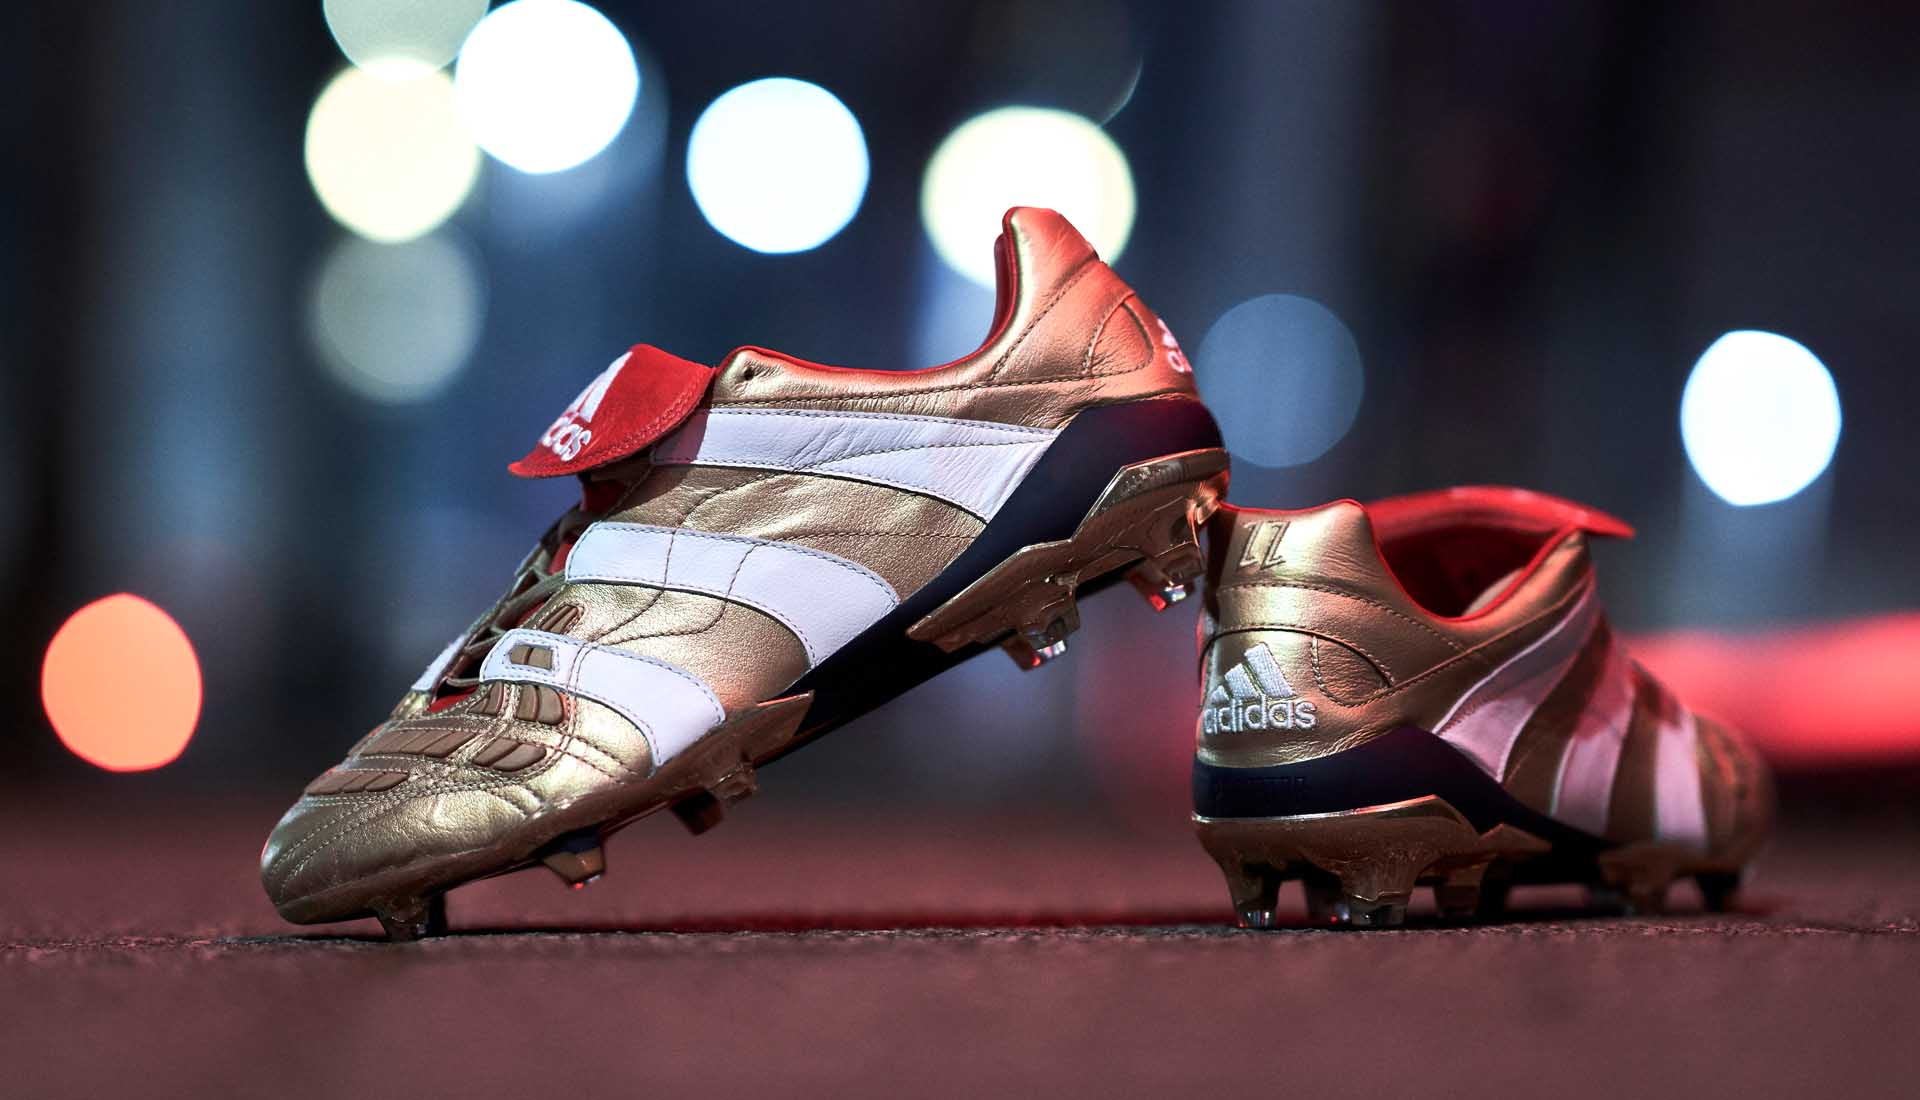 a0a87db64bba Closer Look at the adidas '25 Years of Predator' Zidane Accelerator ...